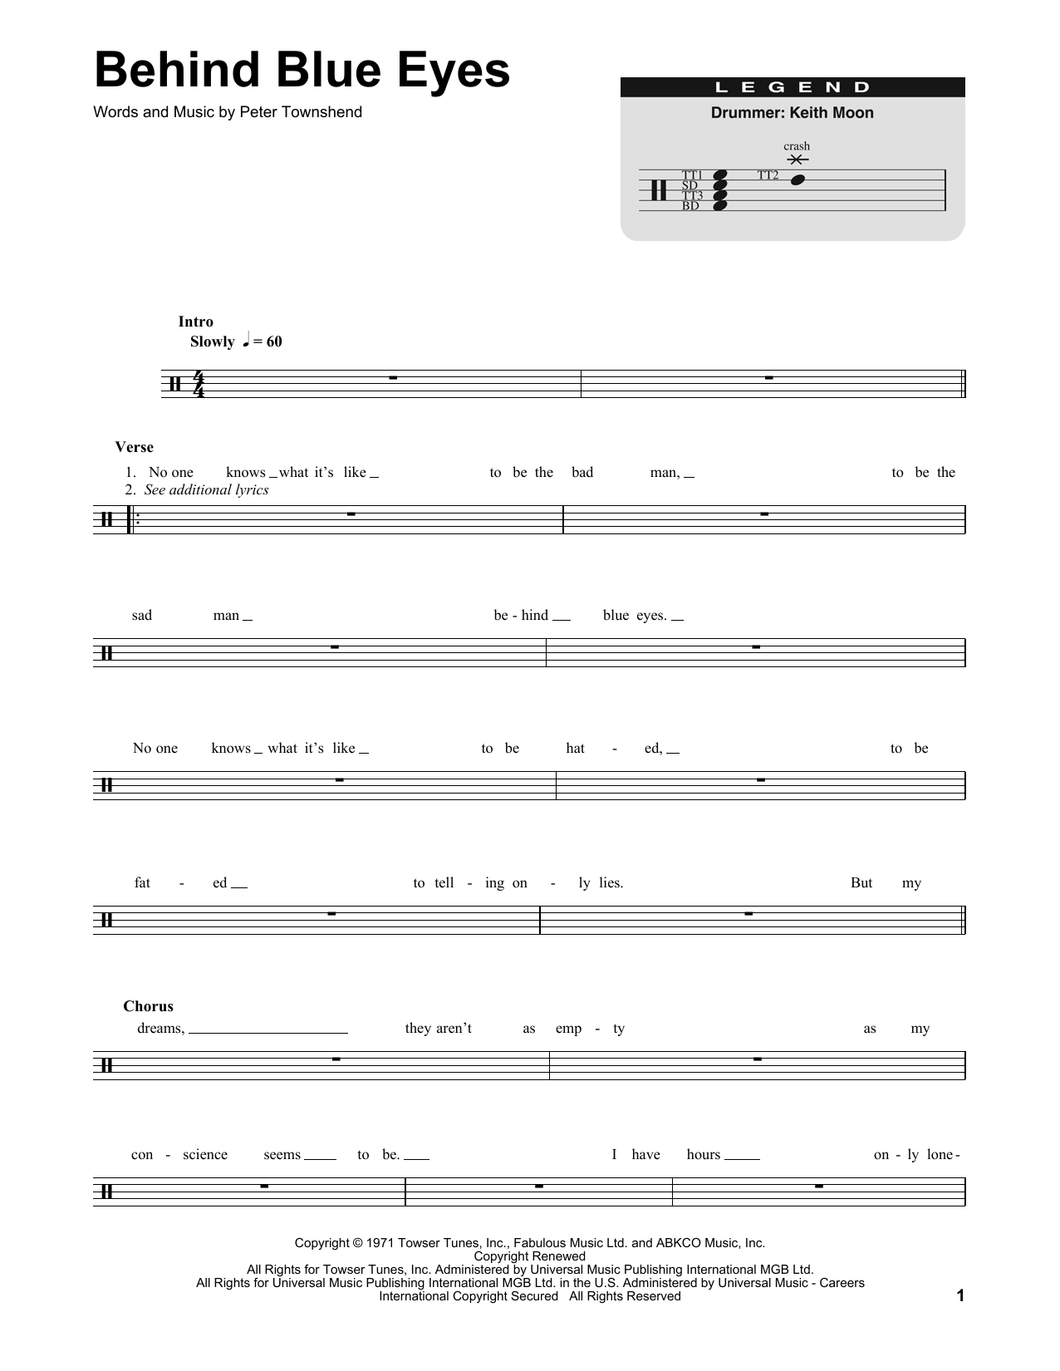 Behind Blue Eyes - The Who - Full Drum Transcription / Drum Sheet Music - SheetMusicDirect DT